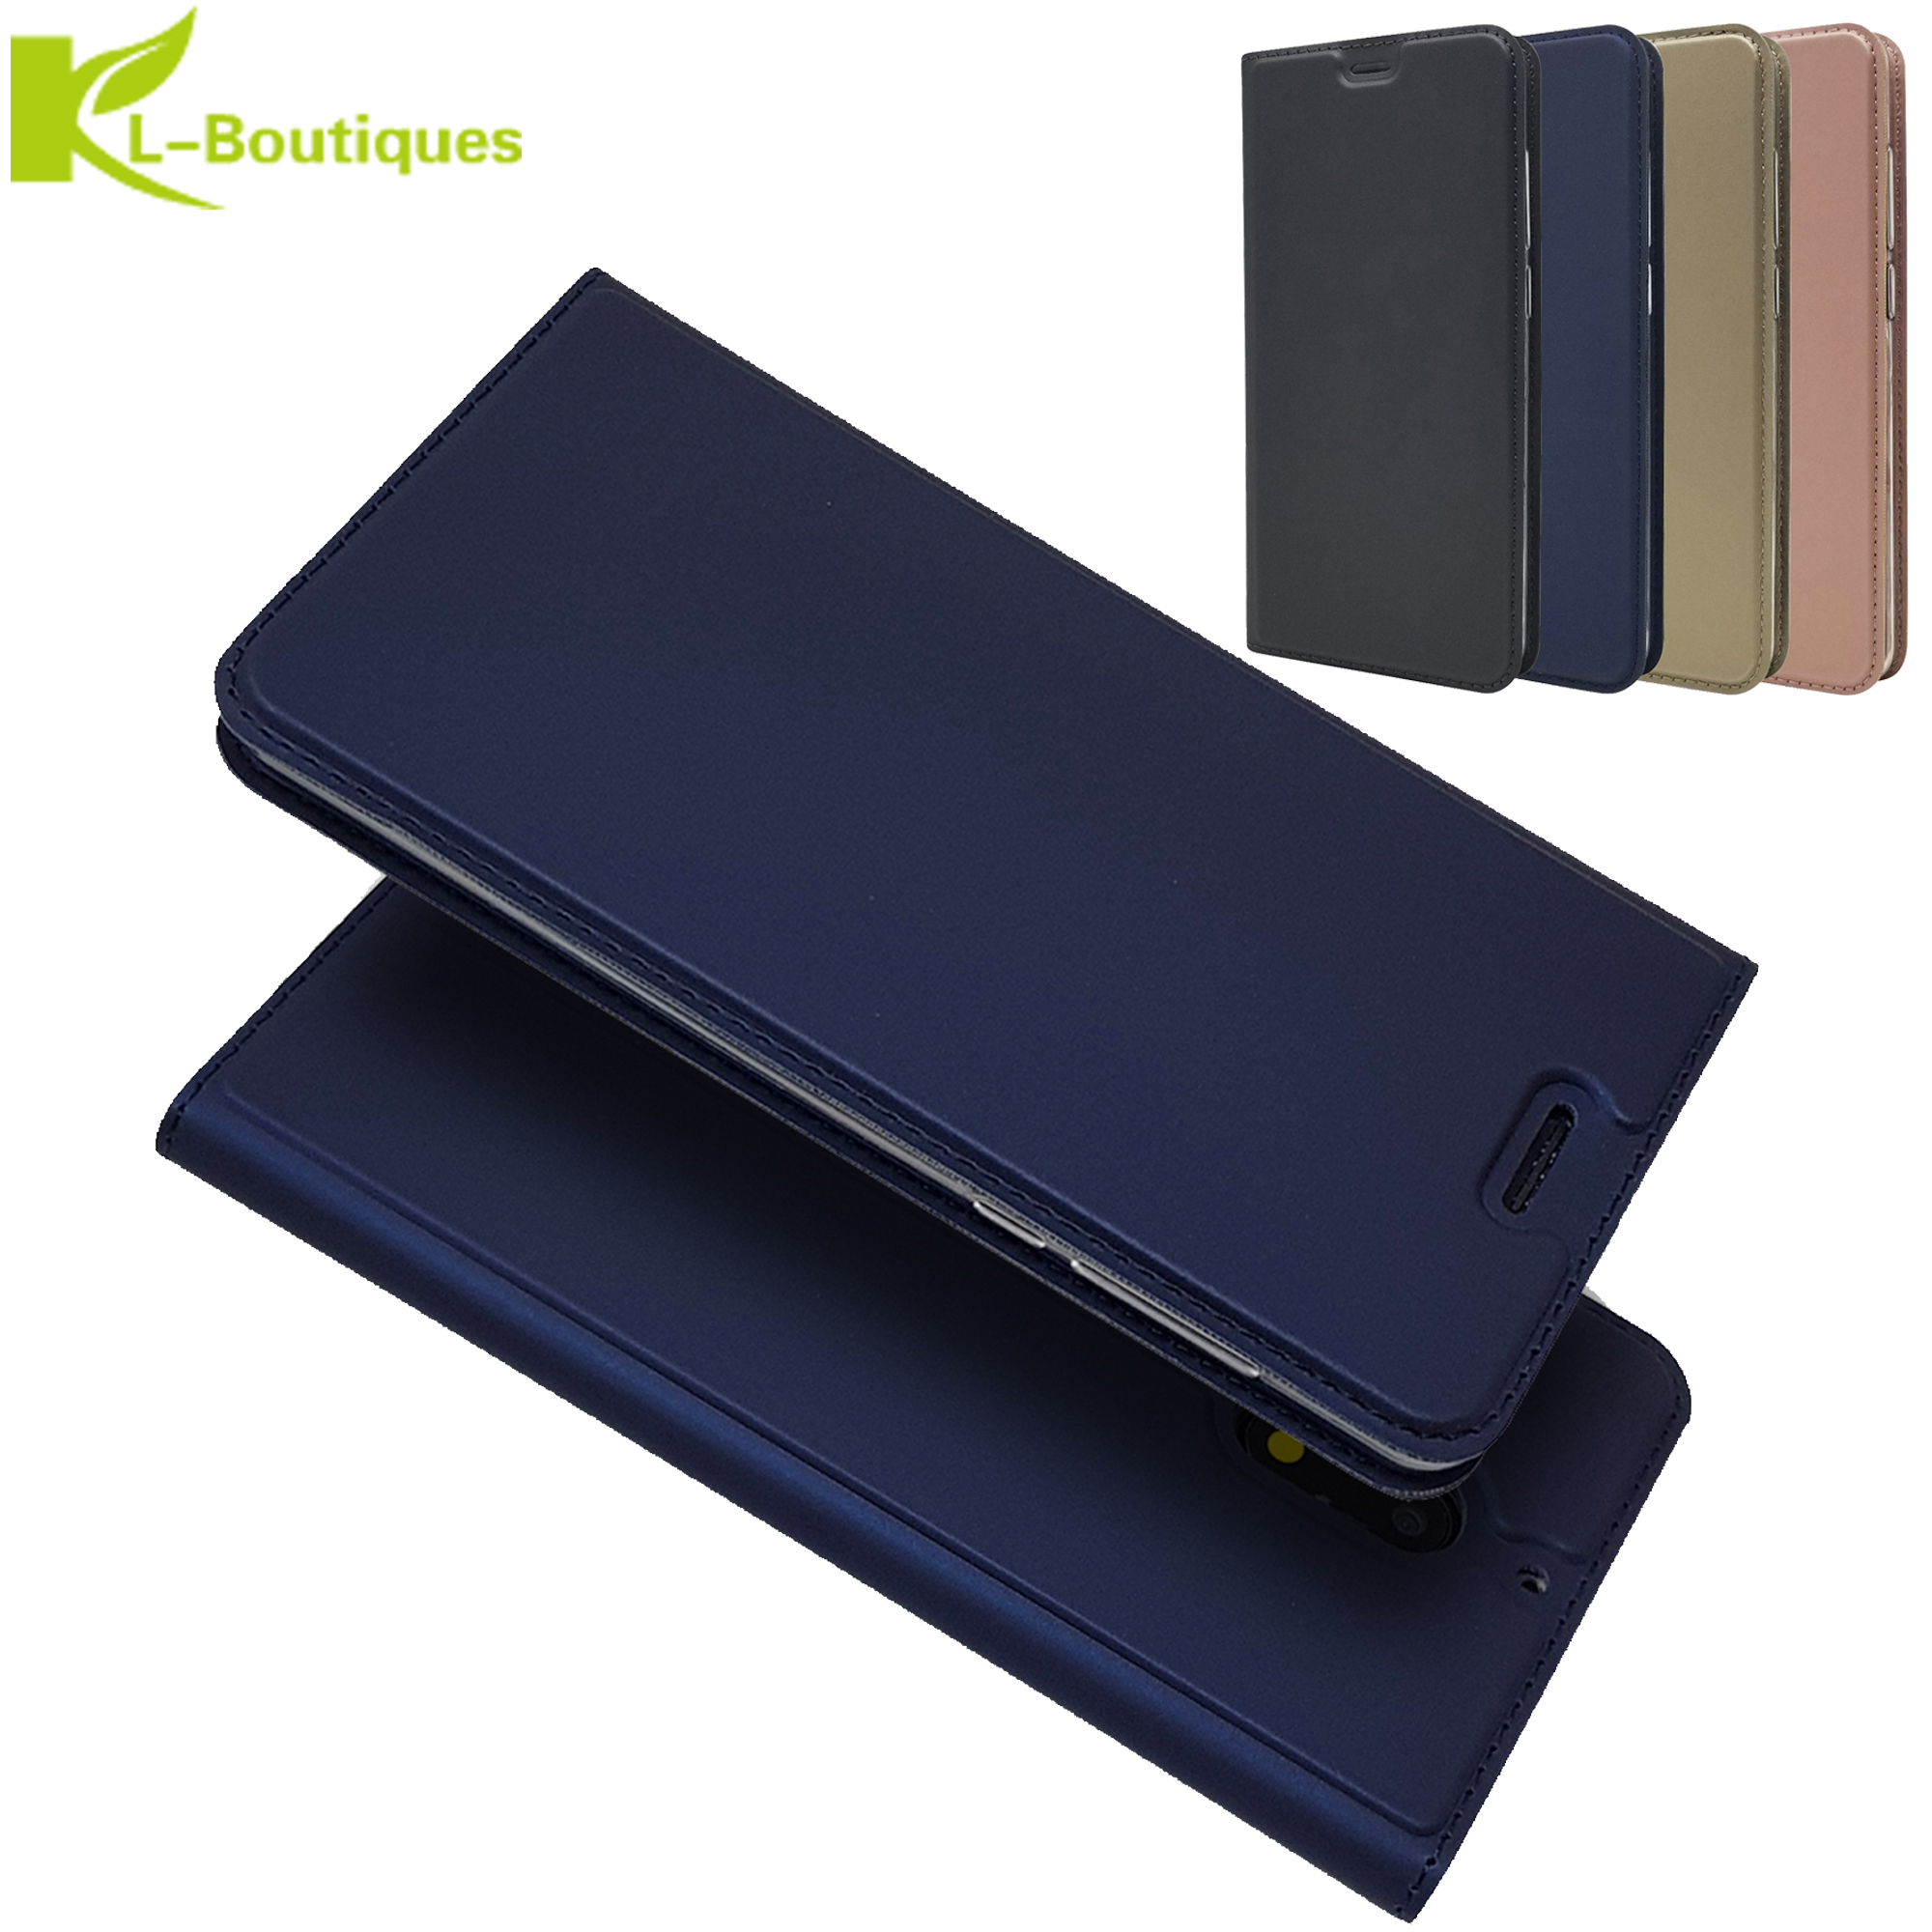 KL-Boutiques FOR Capa <font><b>Nokia</b></font> <font><b>6</b></font> Case Cover Leather FOR <font><b>Nokia</b></font> <font><b>6</b></font> <font><b>2017</b></font> TA-1000 TA-1003 Phone Case FOR <font><b>Nokia</b></font> <font><b>6</b></font> Coque TA-1021 ta-1021 image